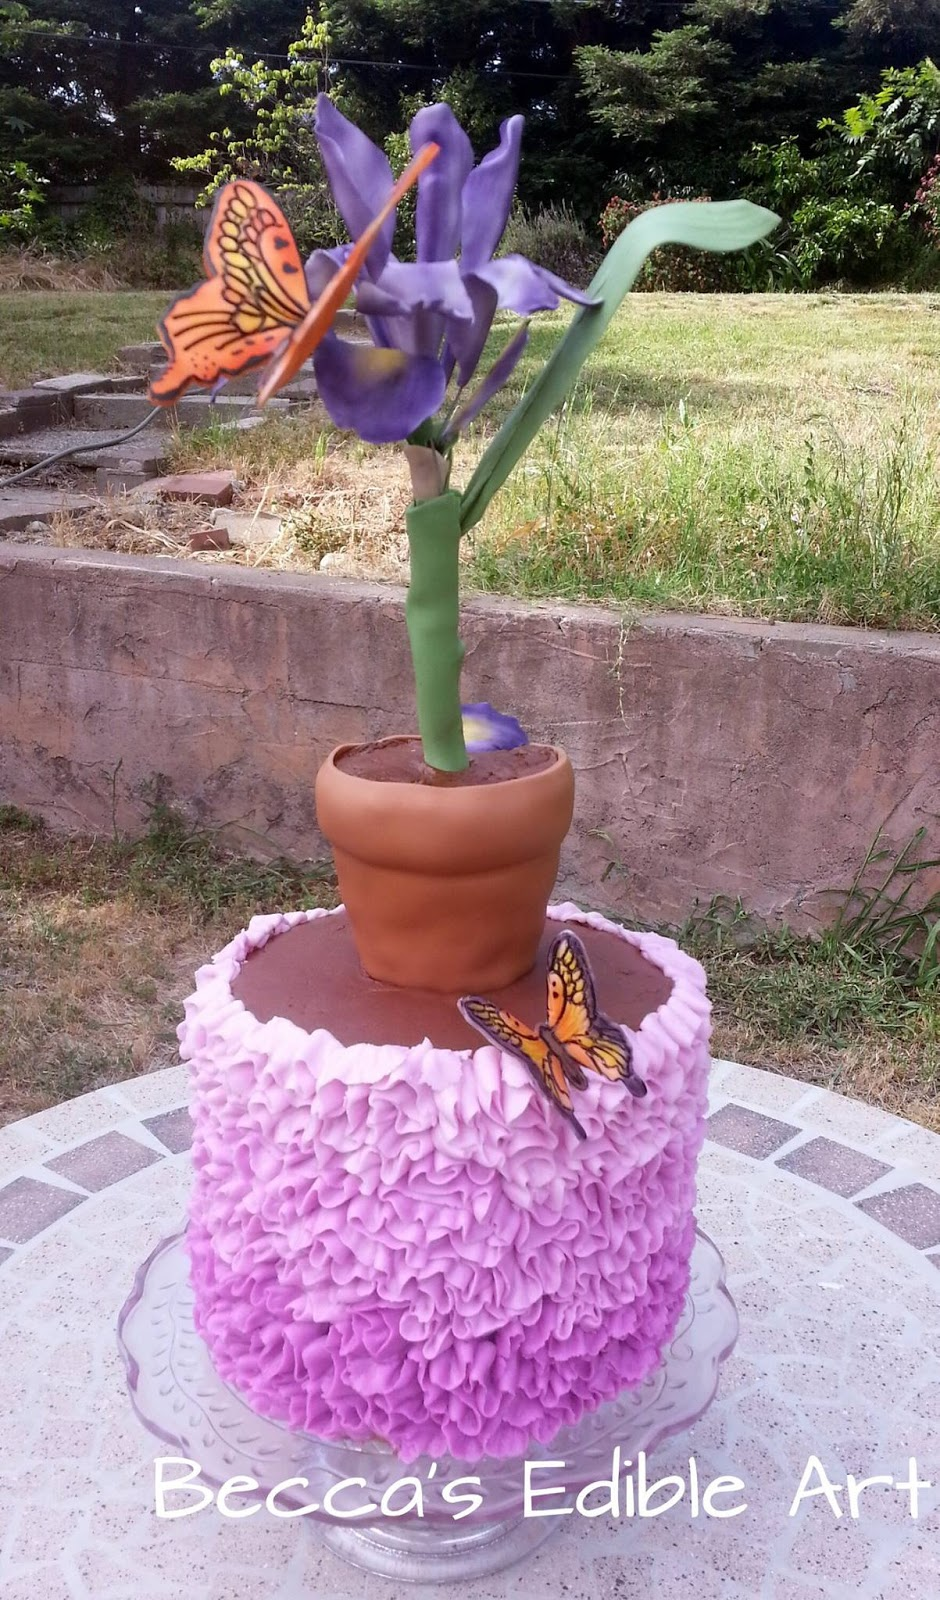 Becca's Edible Art Butterfly Flower edible Pot dirt cake